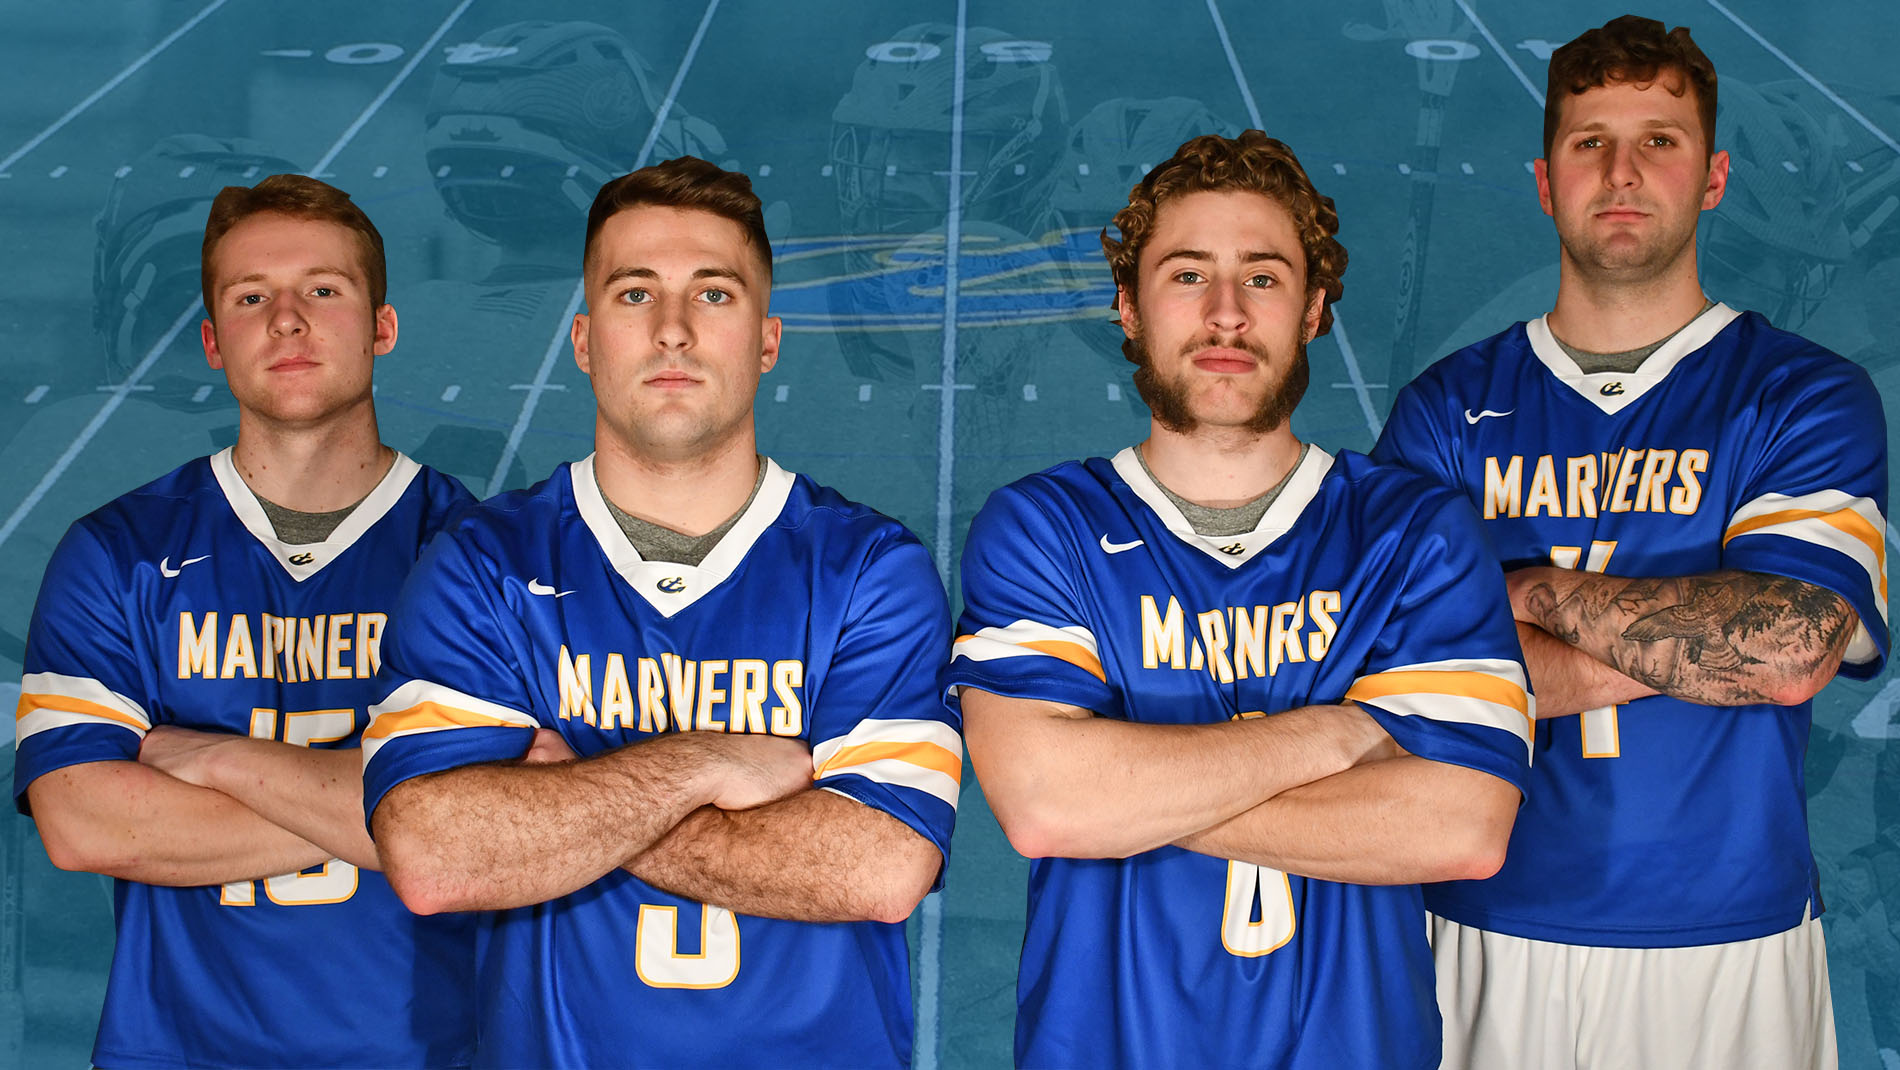 Season Preview: Men's Lacrosse